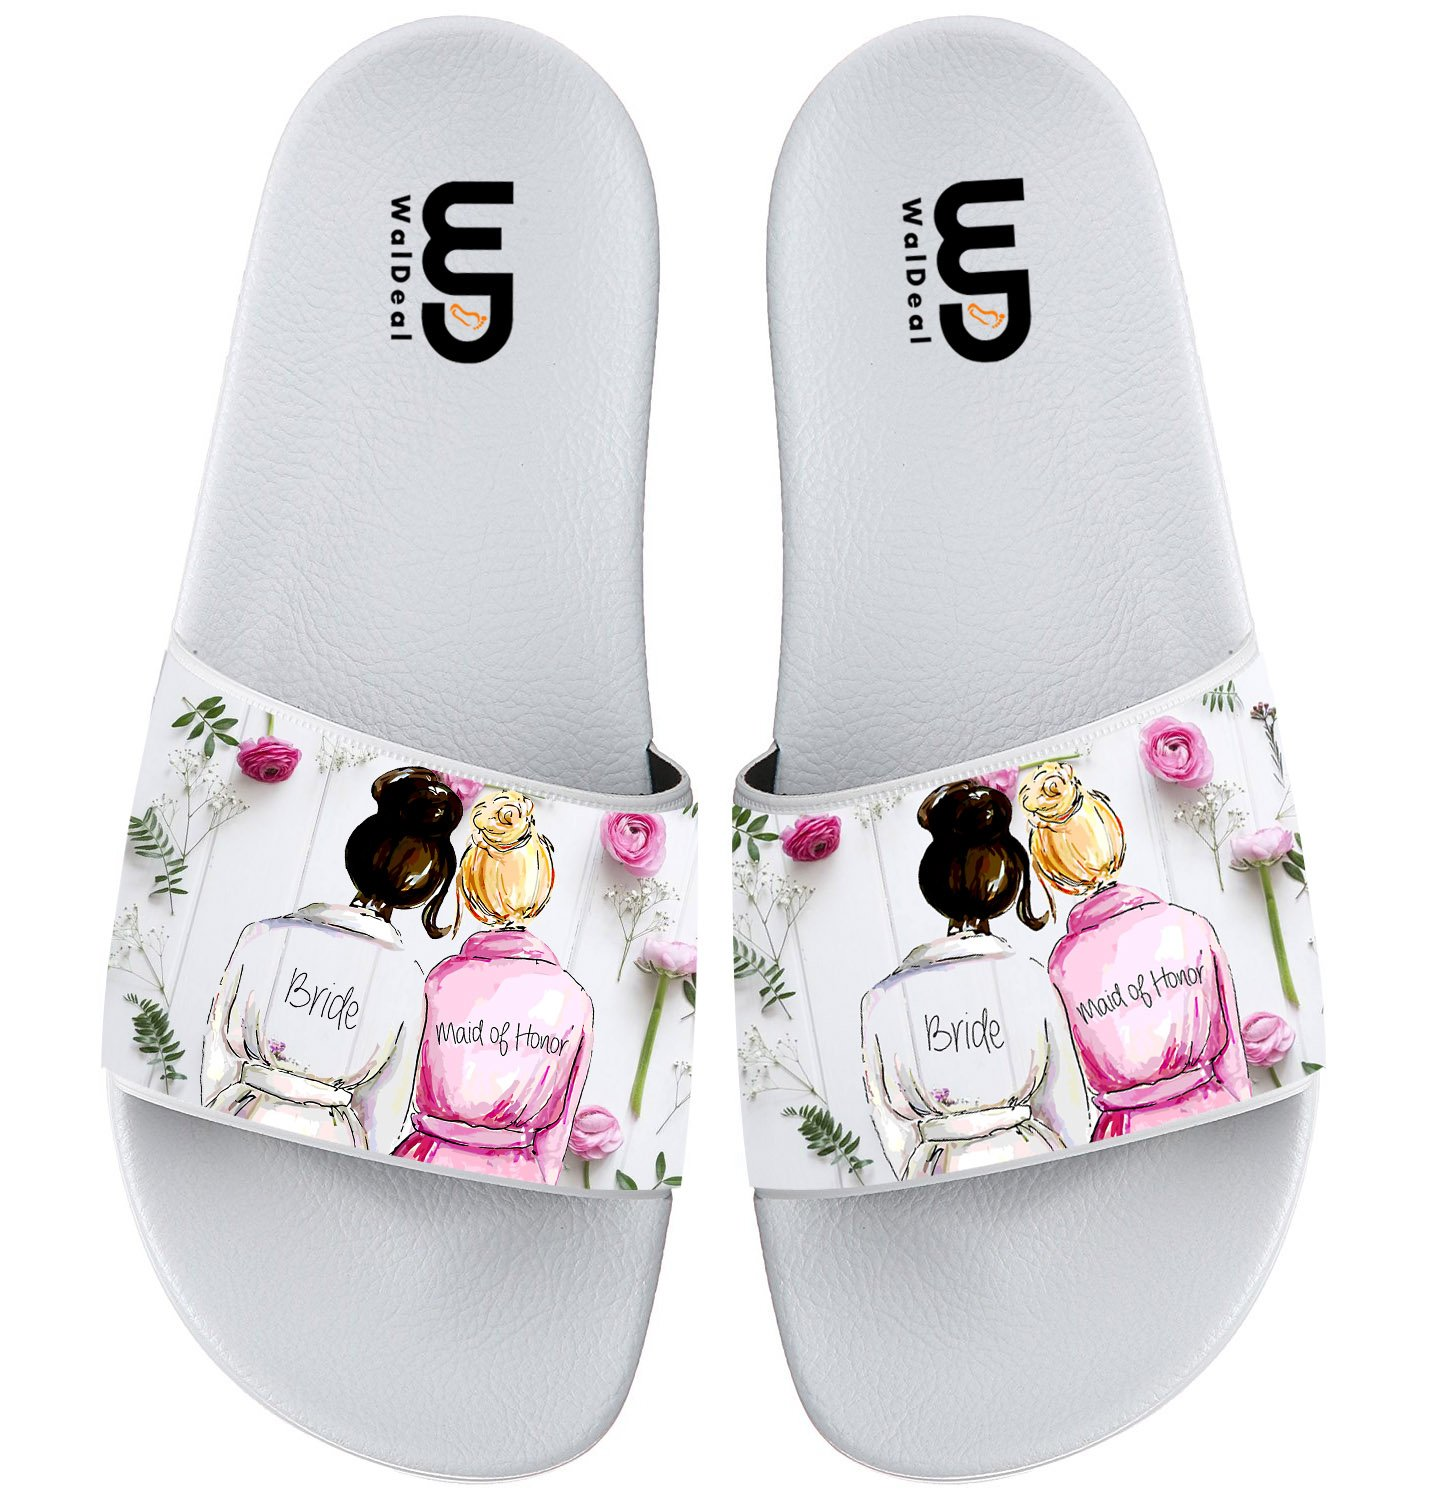 Bride with Maid Of Honor Gift Summer Slide Slippers For Boy Girl Outdoor Beach Sandal Shoes size 13